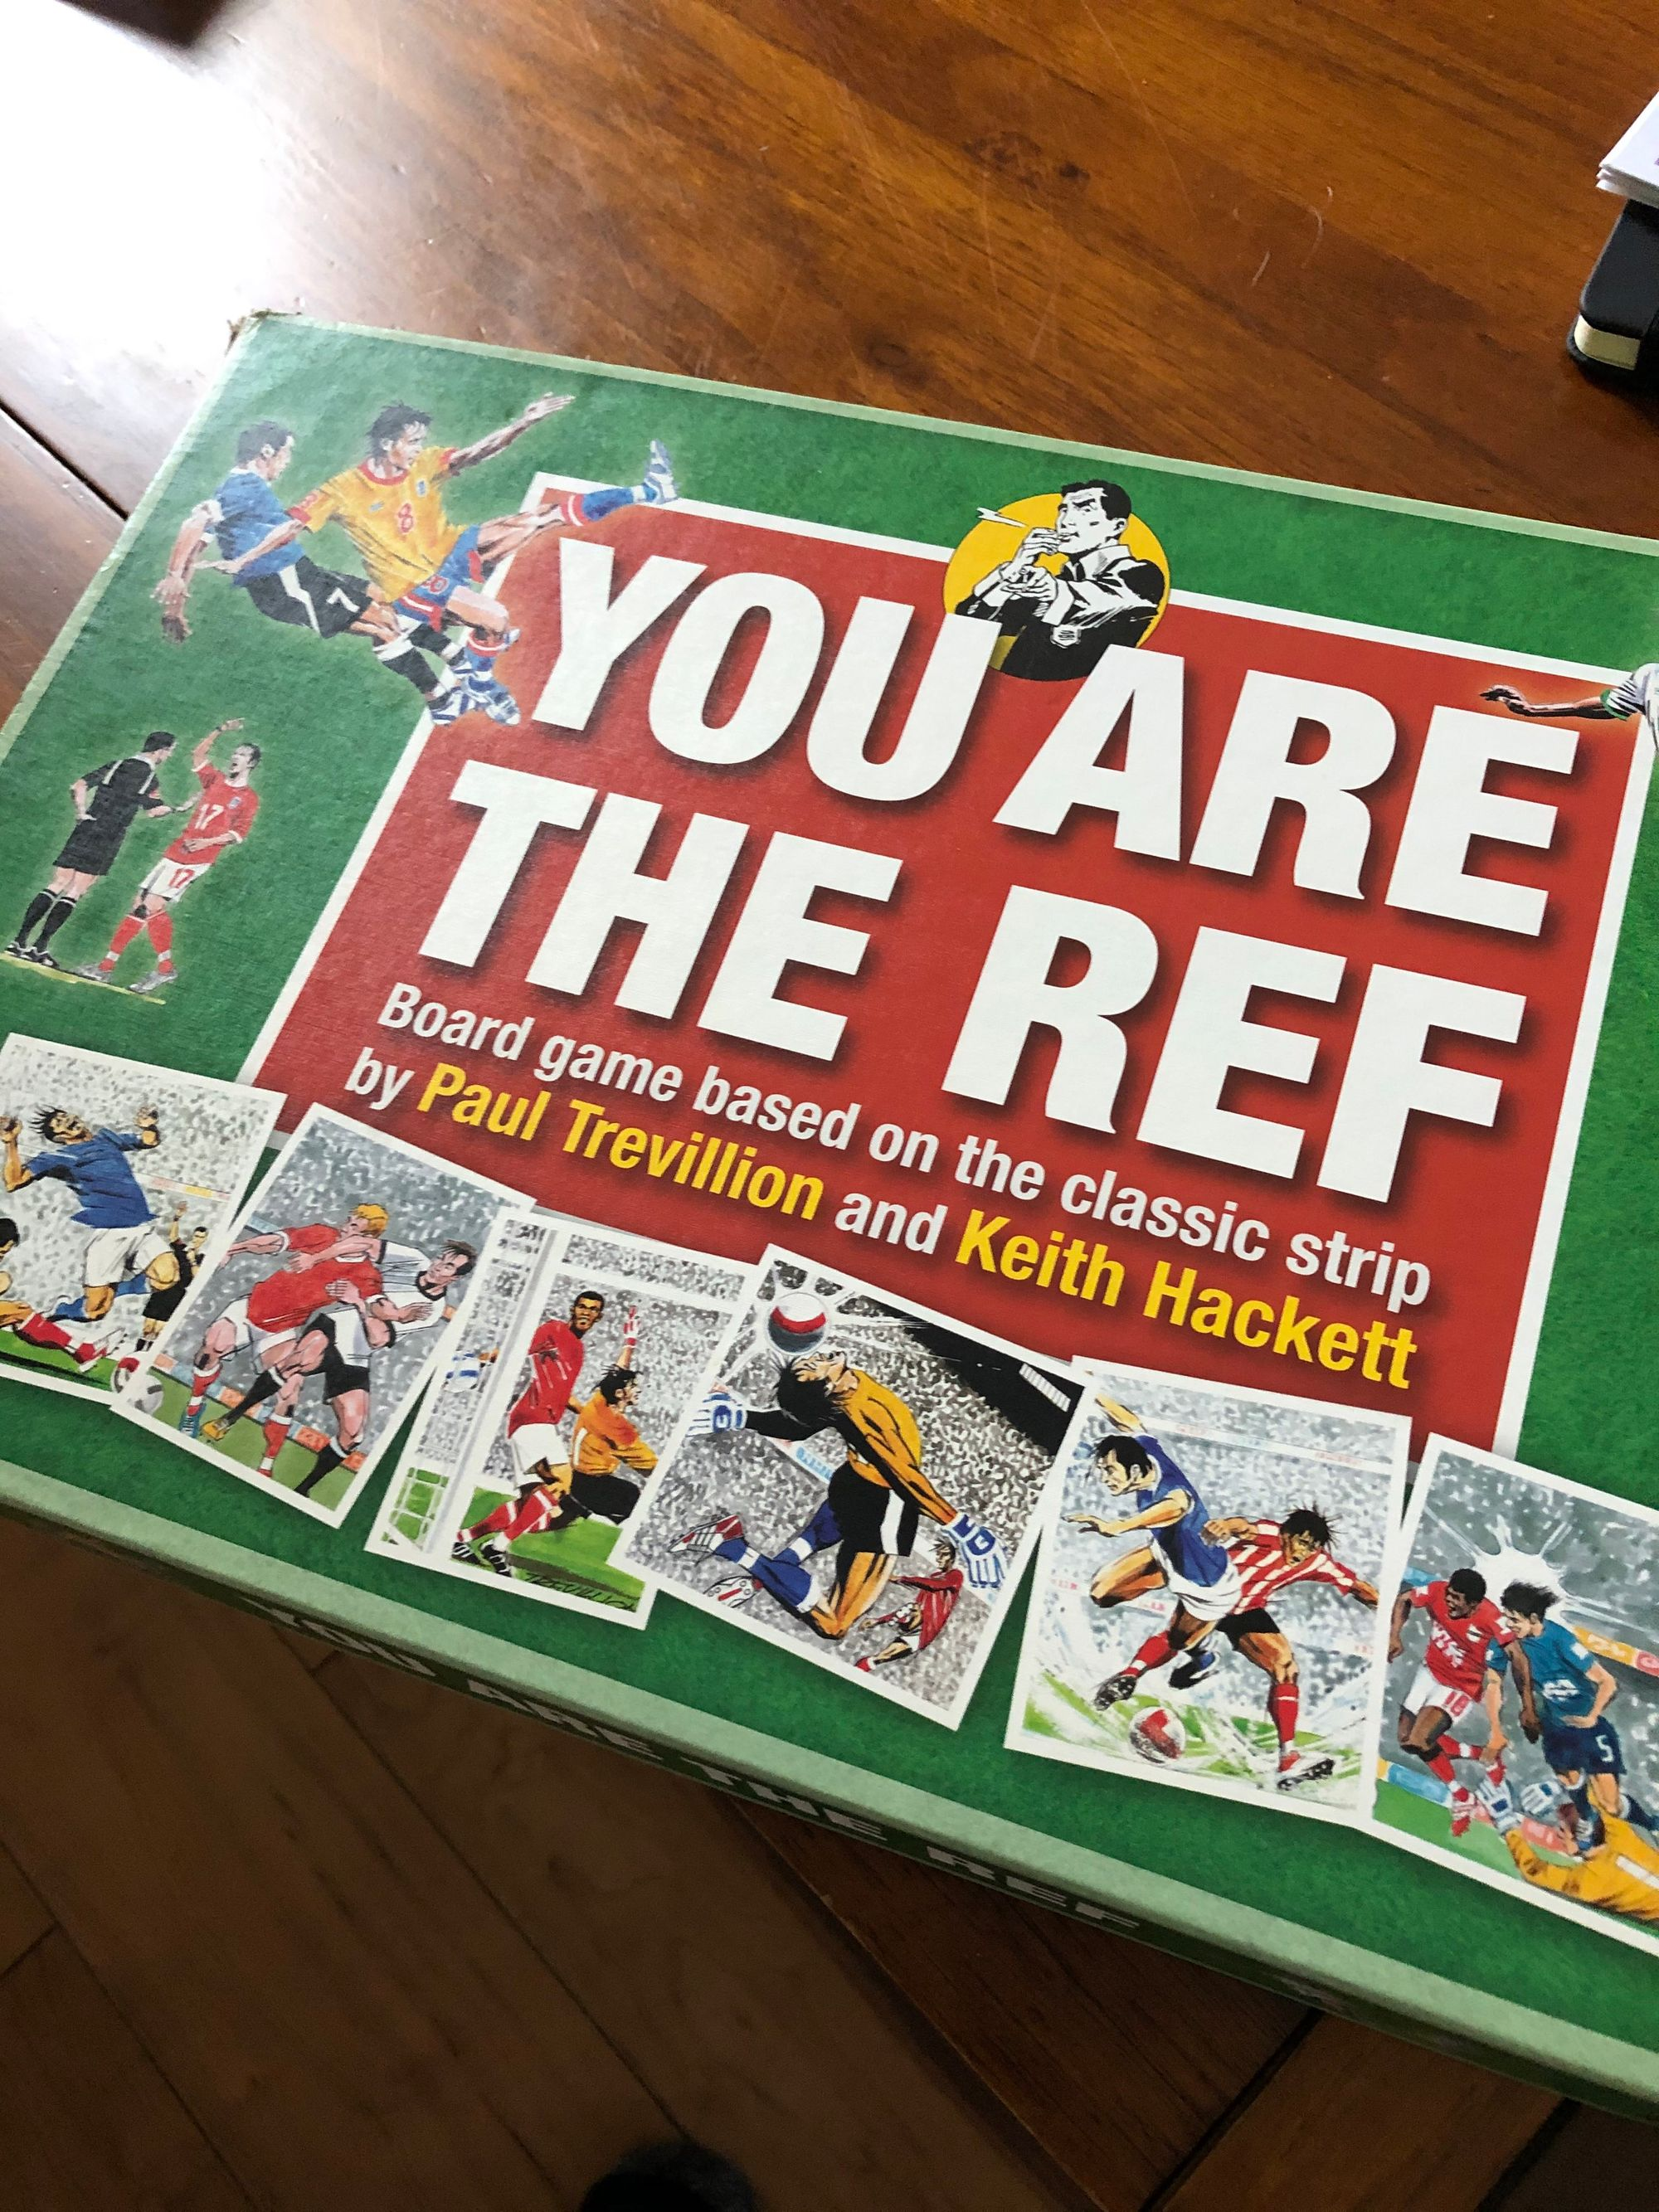 Away From Home - You Are The Ref by Scan Games